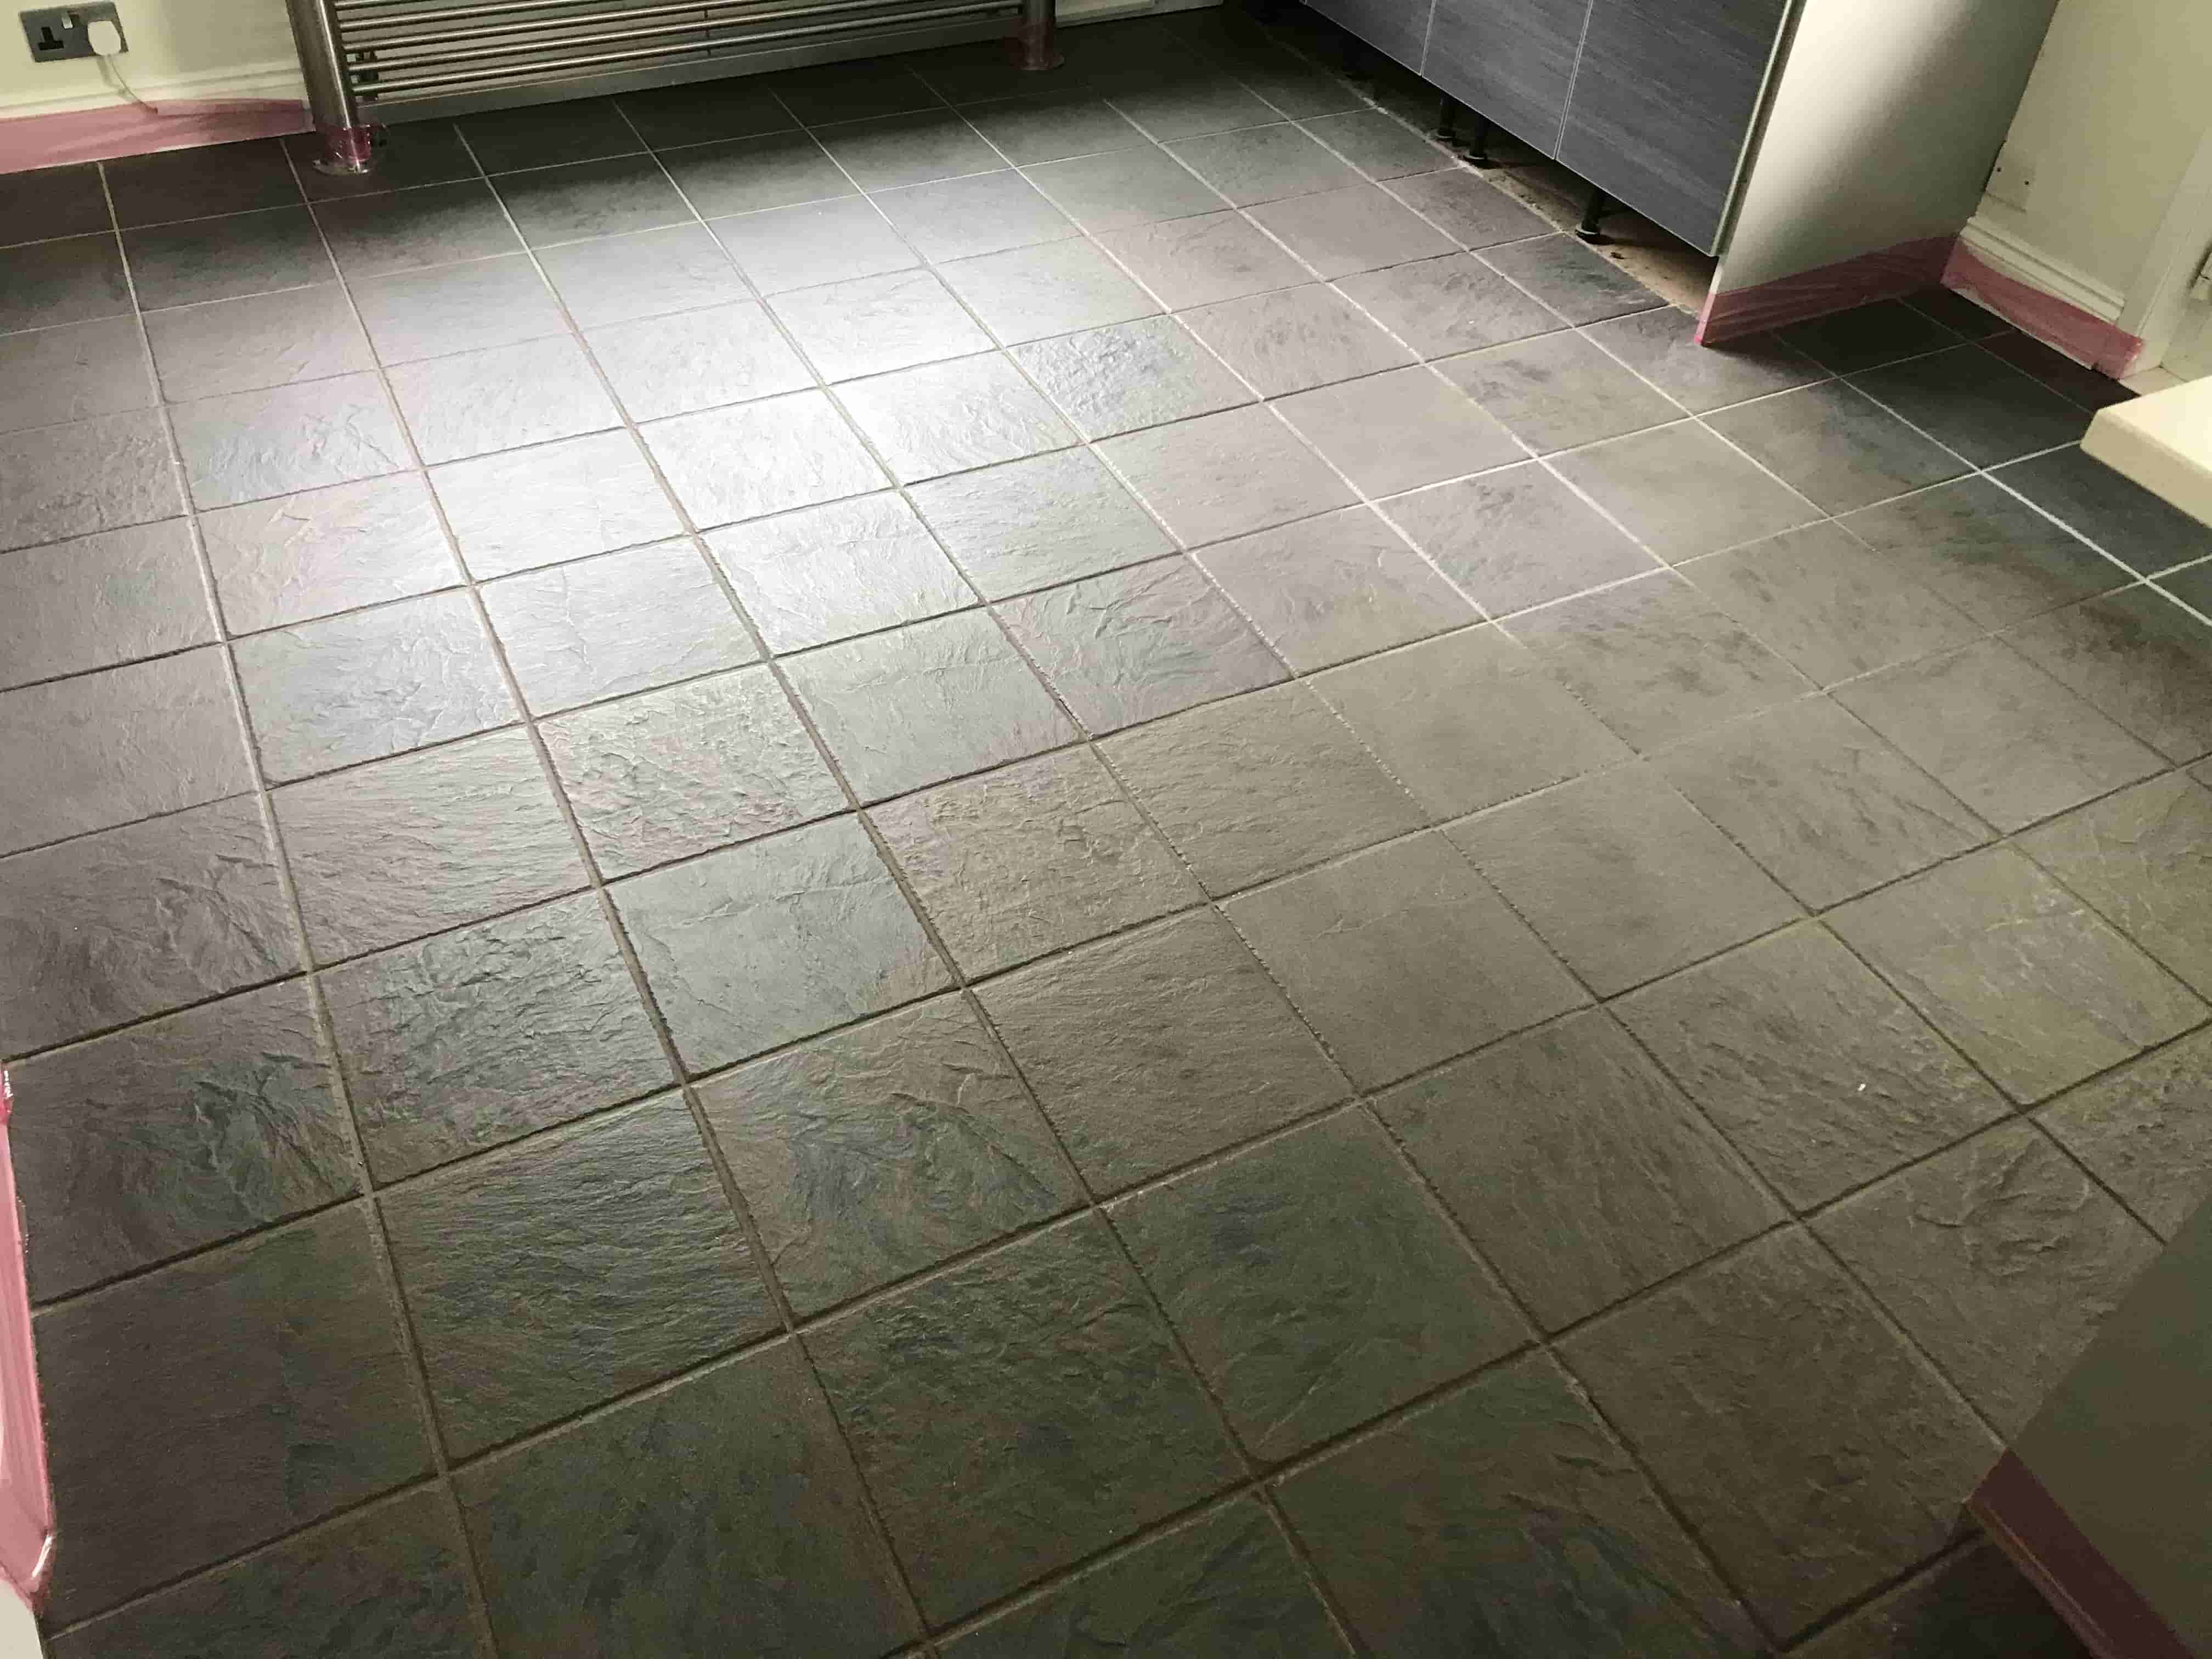 Ceramic Tiled Kitchen Floor Stained With Grout Haze Before Cleaning Sandhurst